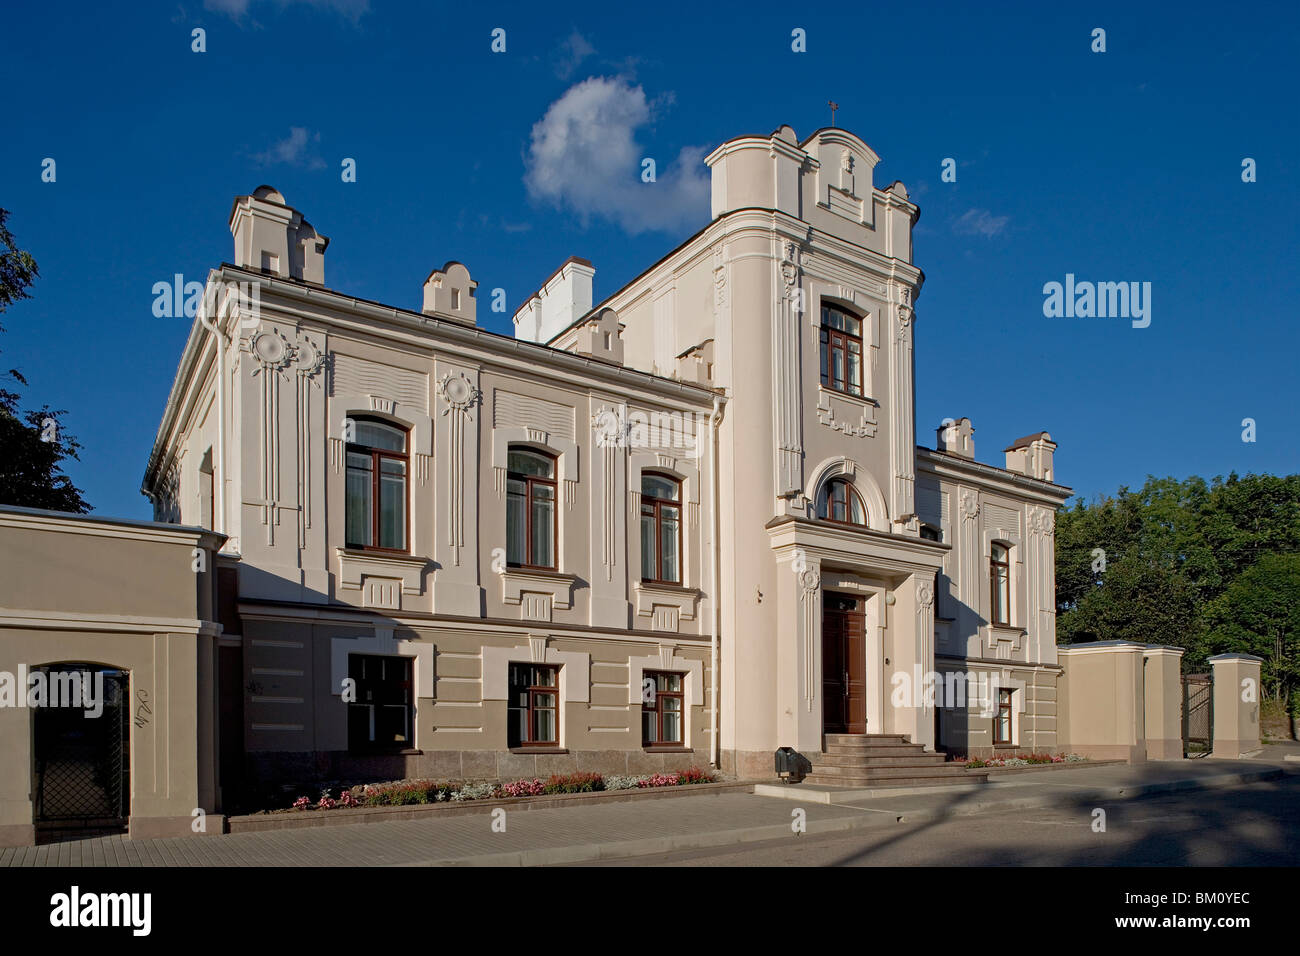 Russia,Pskov,Mason's House,early 20th century. - Stock Image